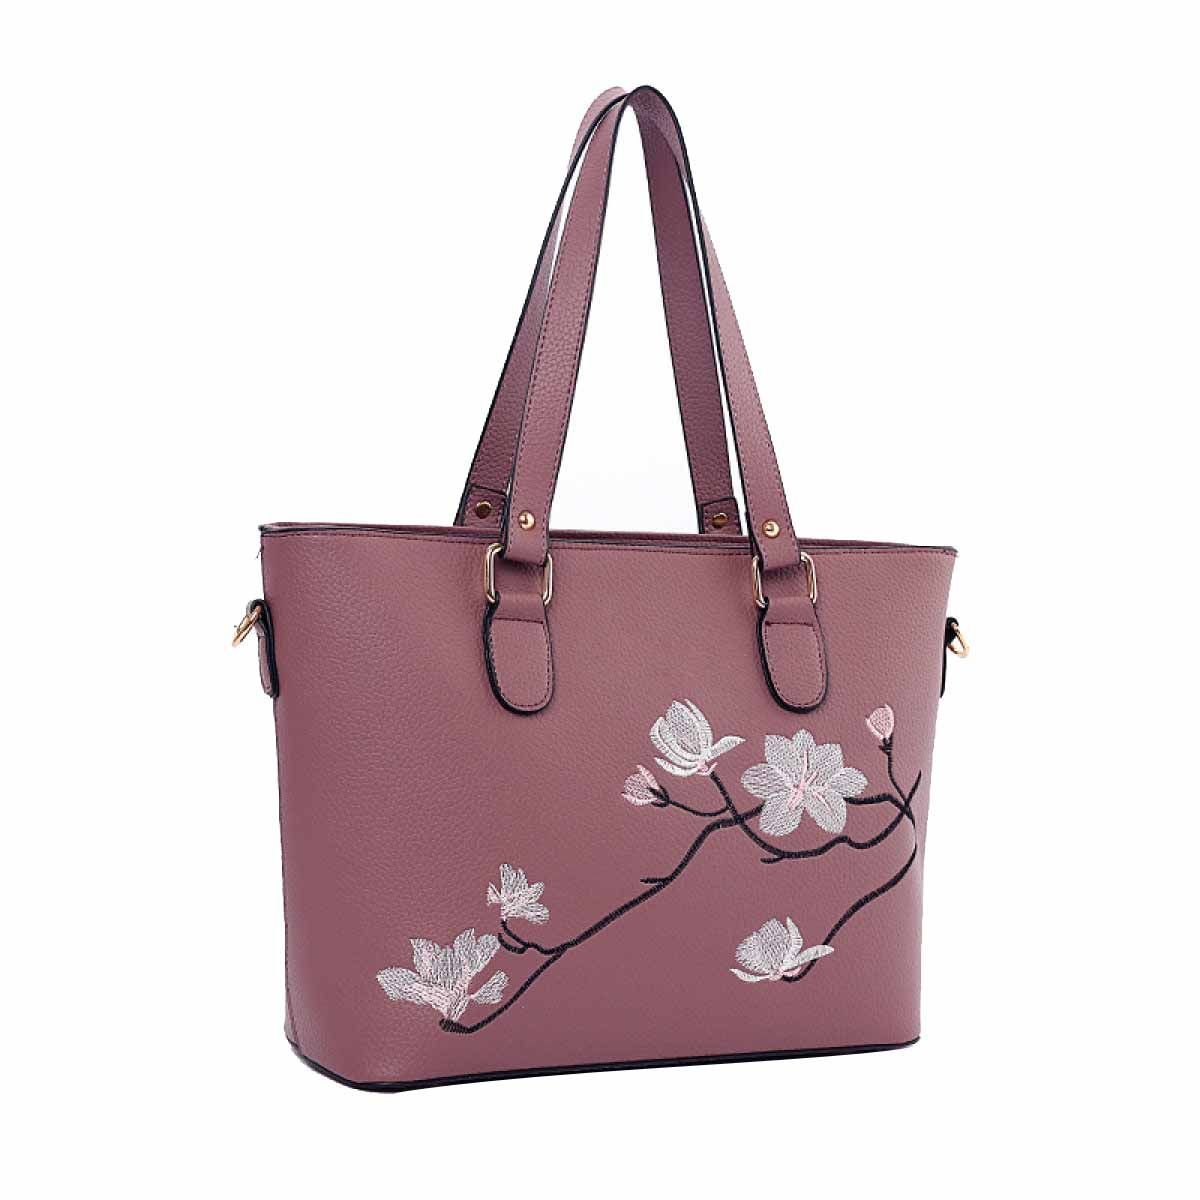 YTTY Sac à Bandoulière Simple Messenger Bag Rétro Mini Sacs à Main de Mode à la Mode Paquet Shell Sauvage, rose